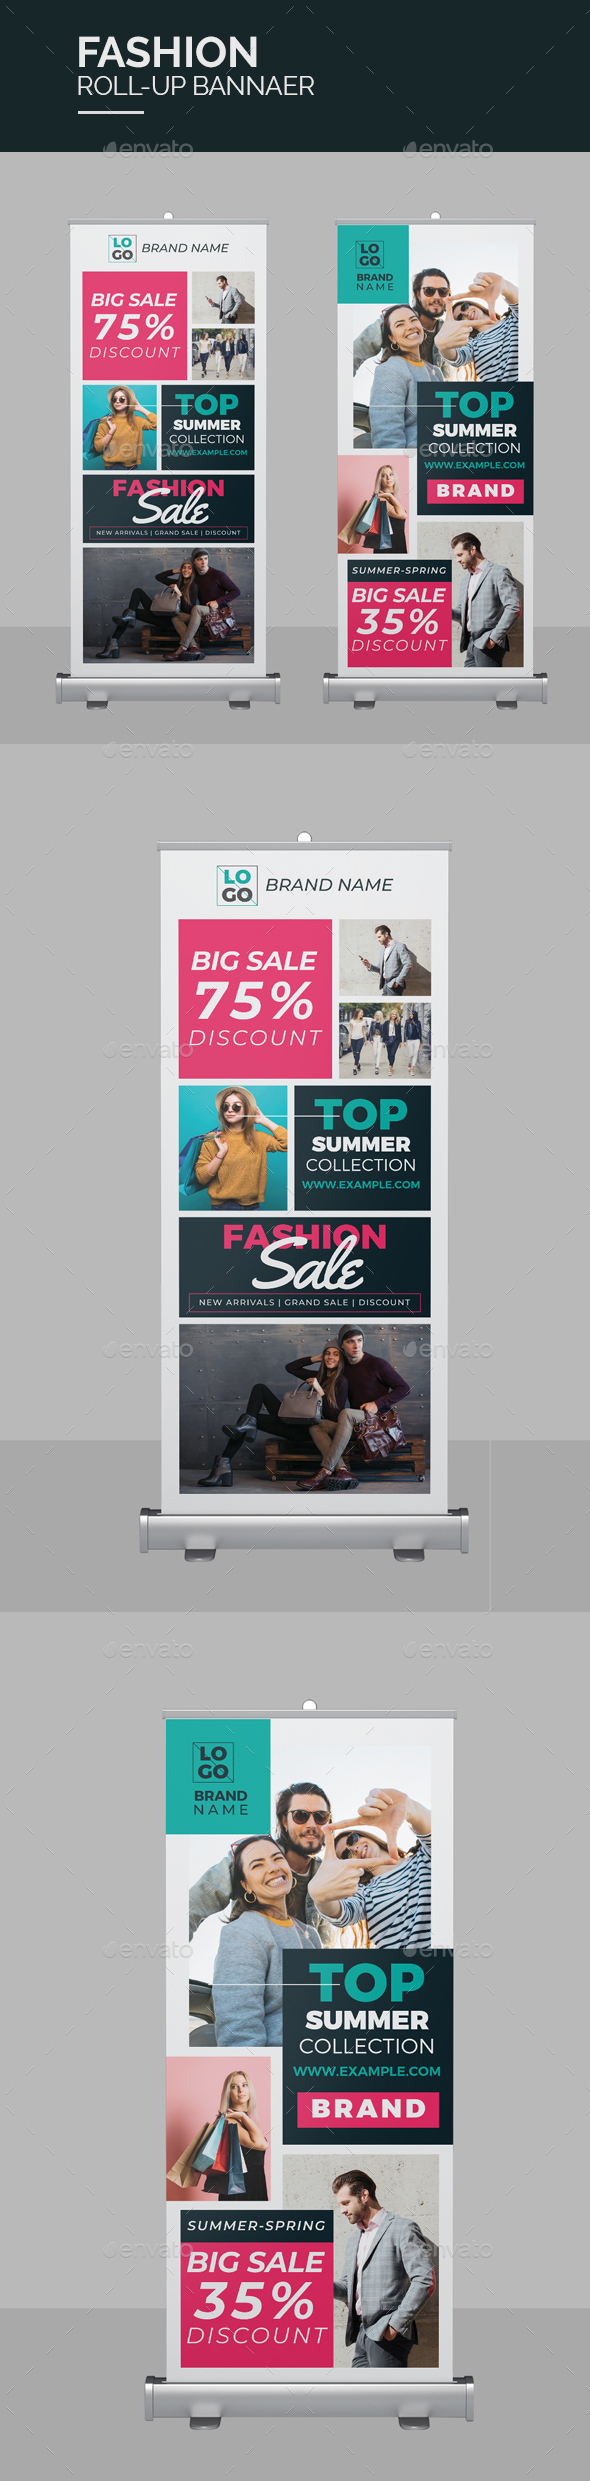 Fashion Roll-Up Banner